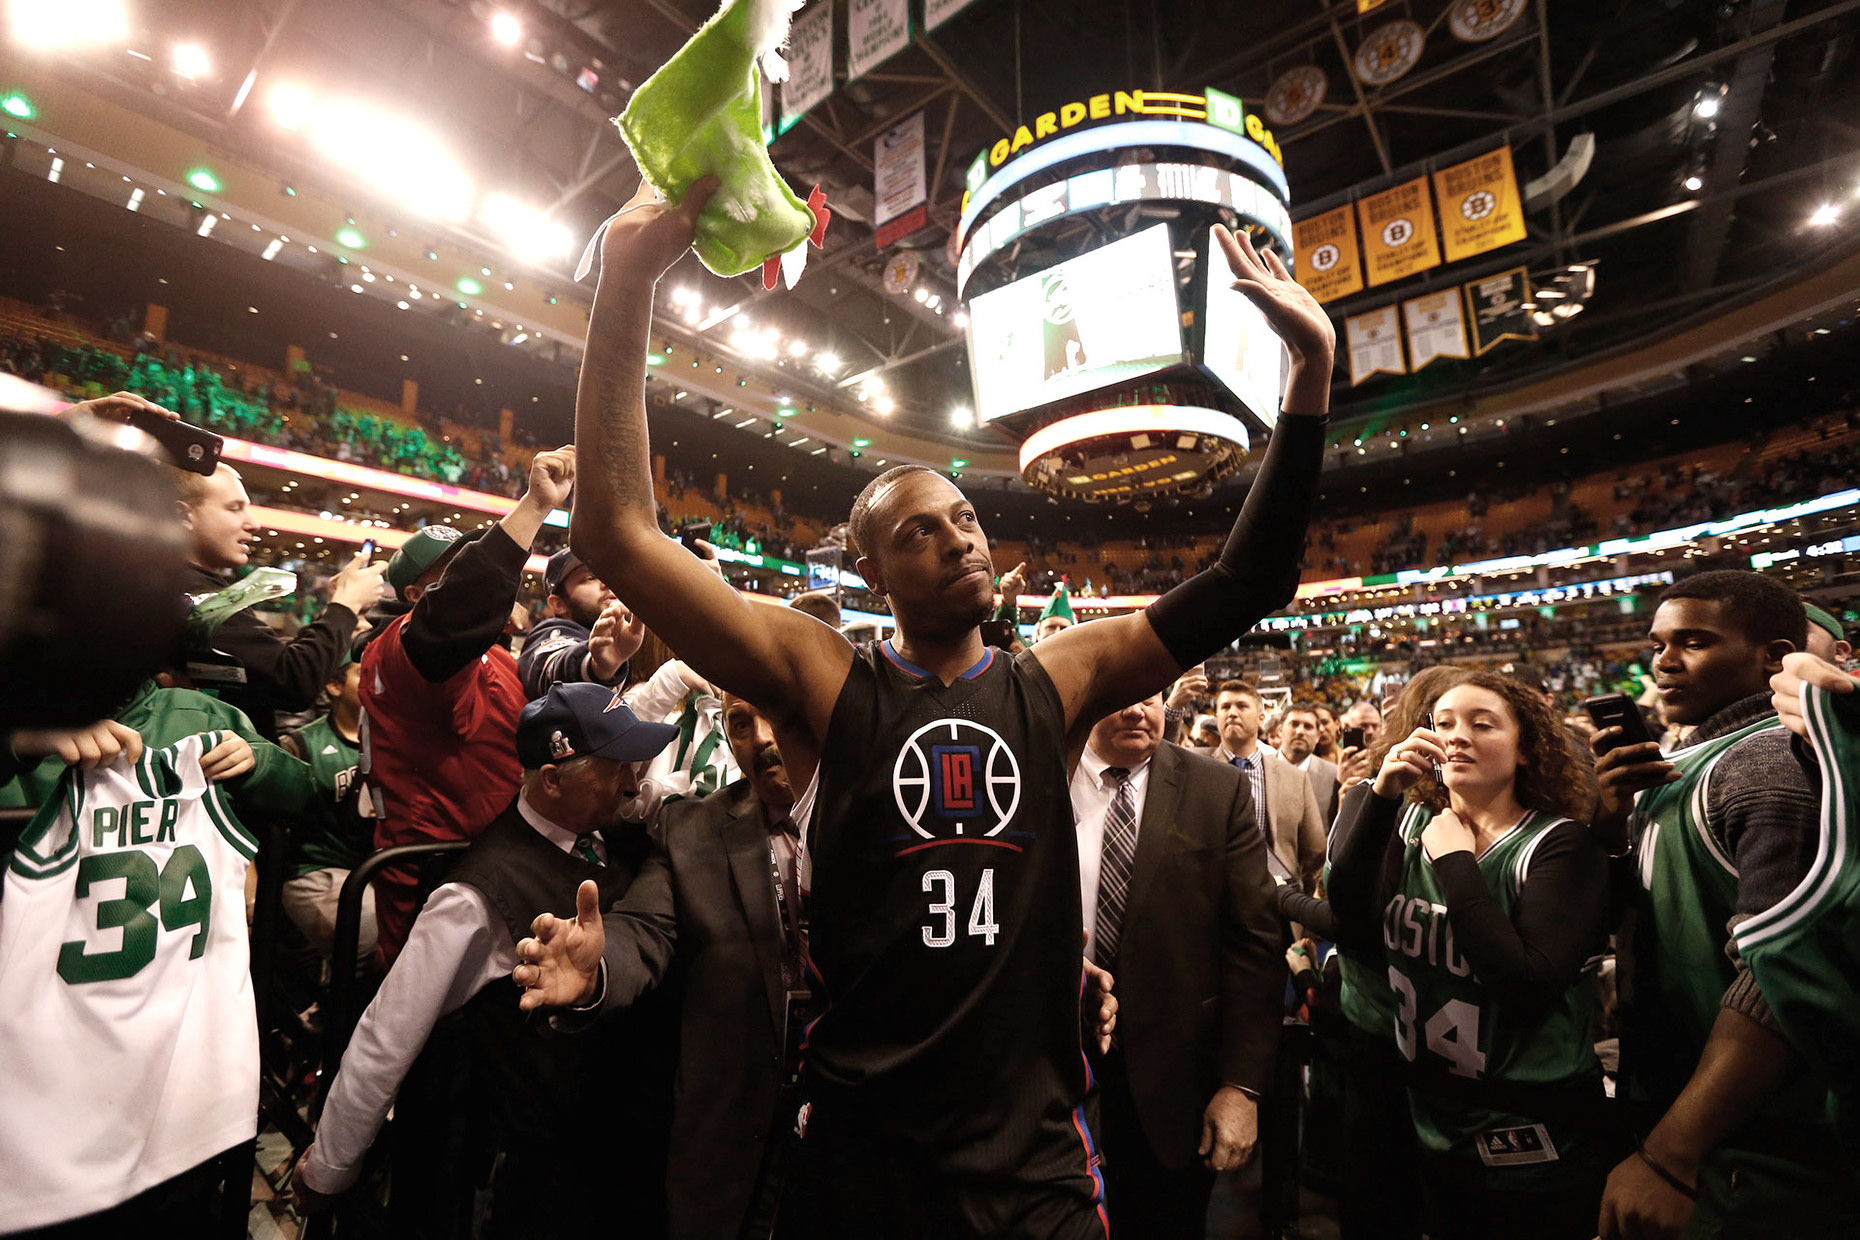 021705_JJ_Paul_Pierce_3264A.JPG